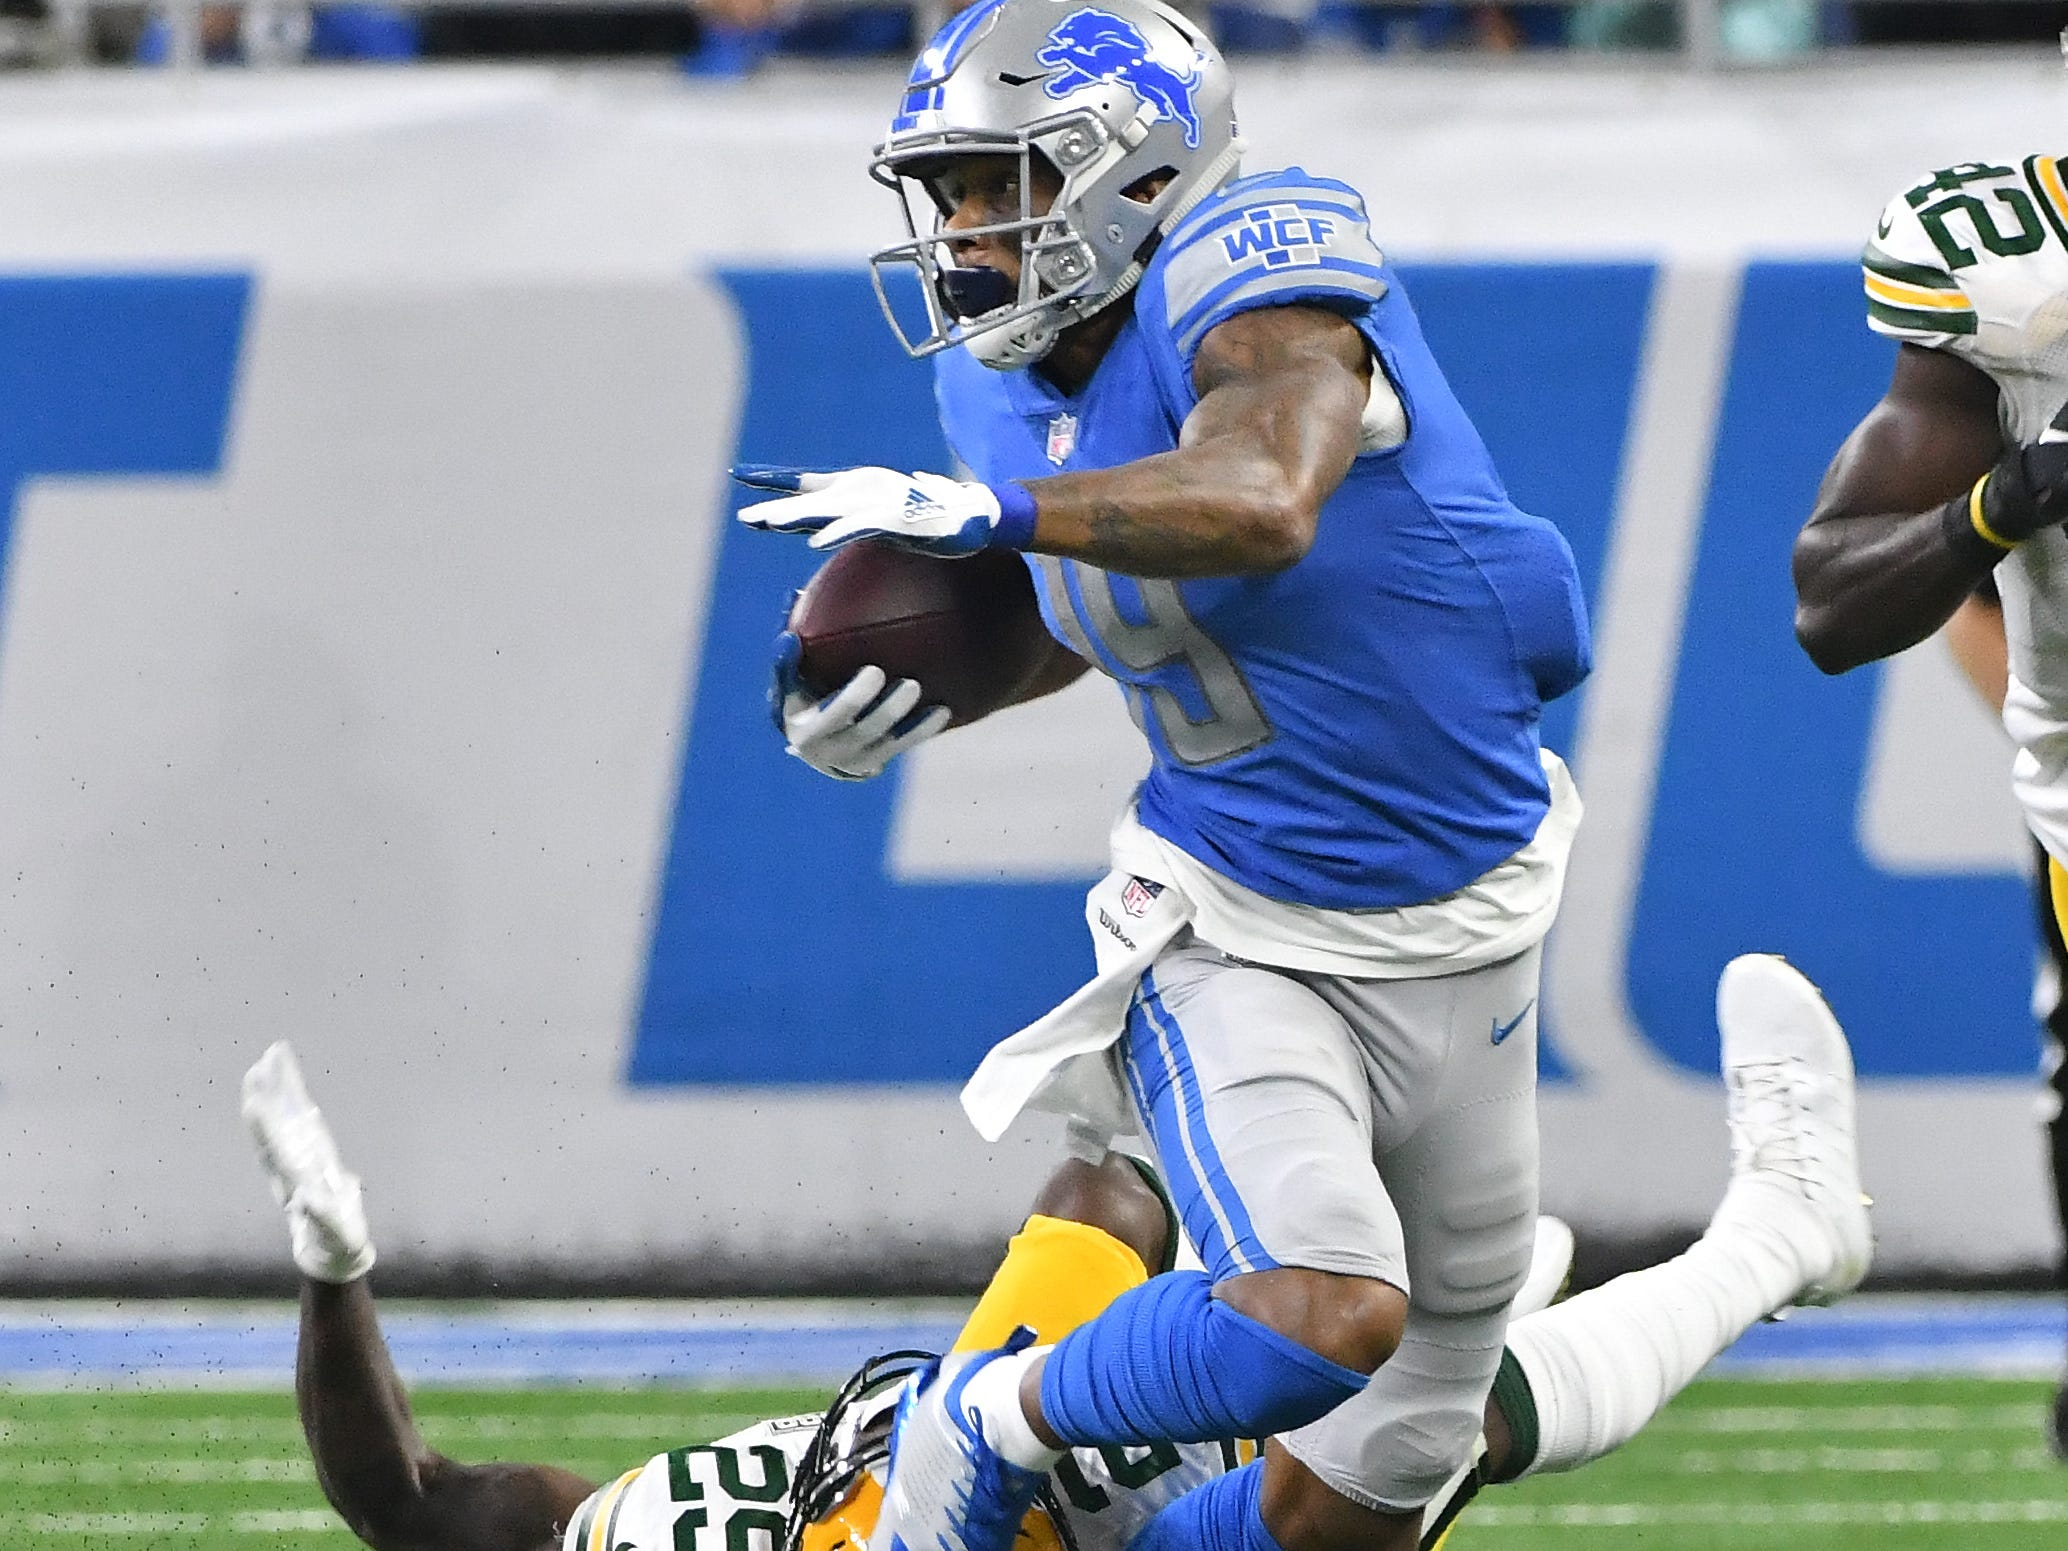 Lion's Kenny Golladay scrambles away from Packers' Kentrell Brice after a reception in the second  quarter.